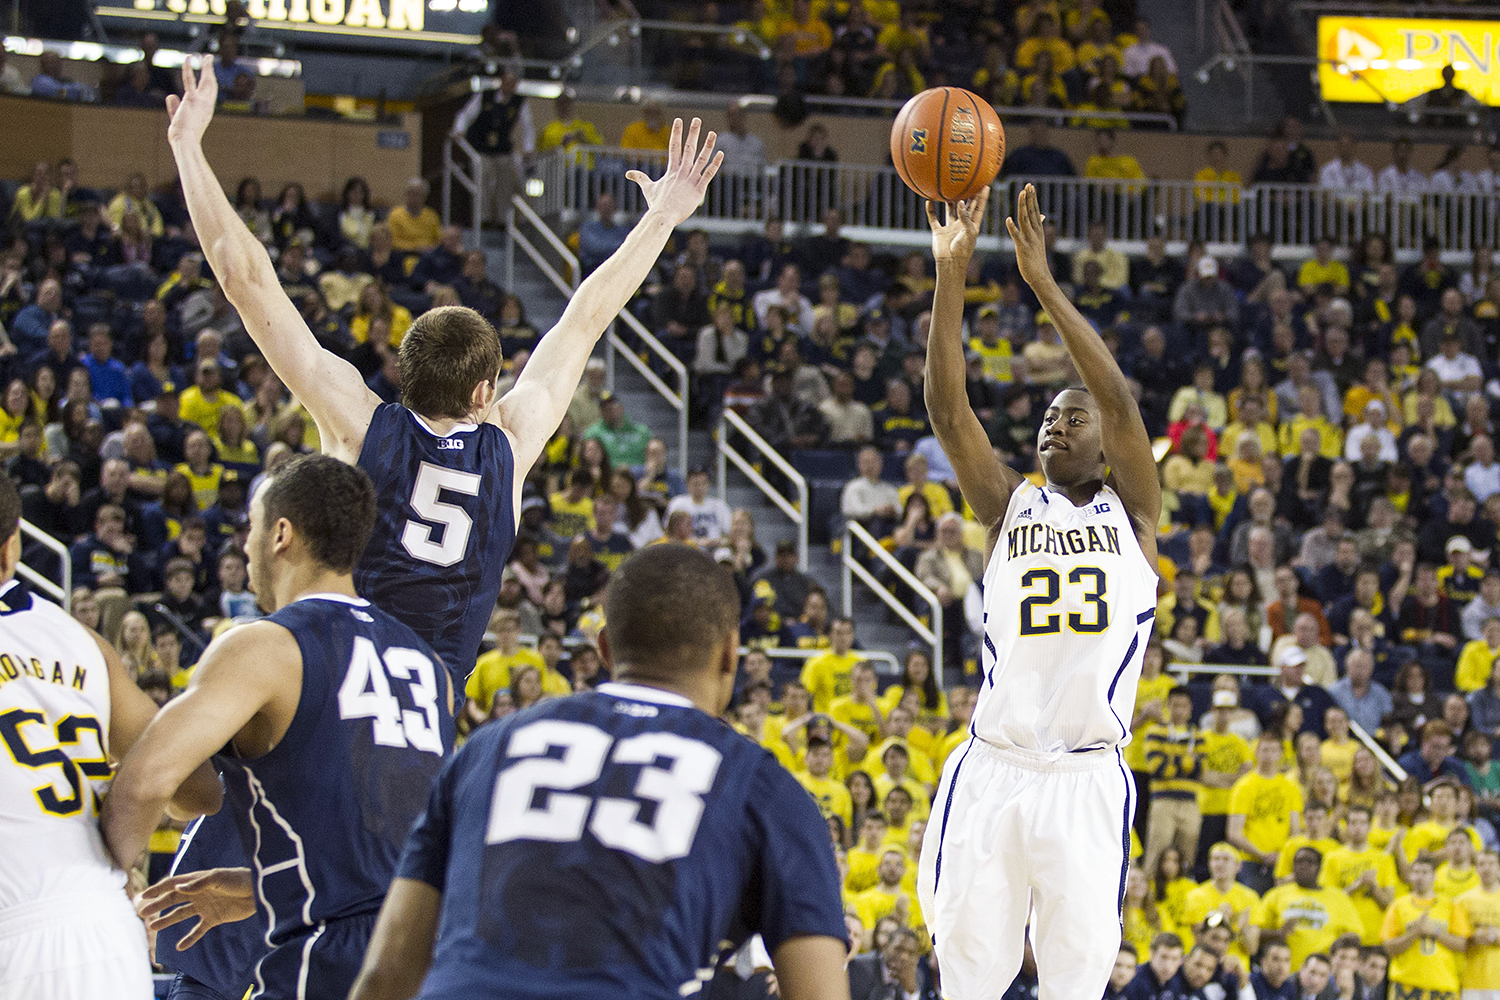 Michigan 80, Penn State 67 – #19